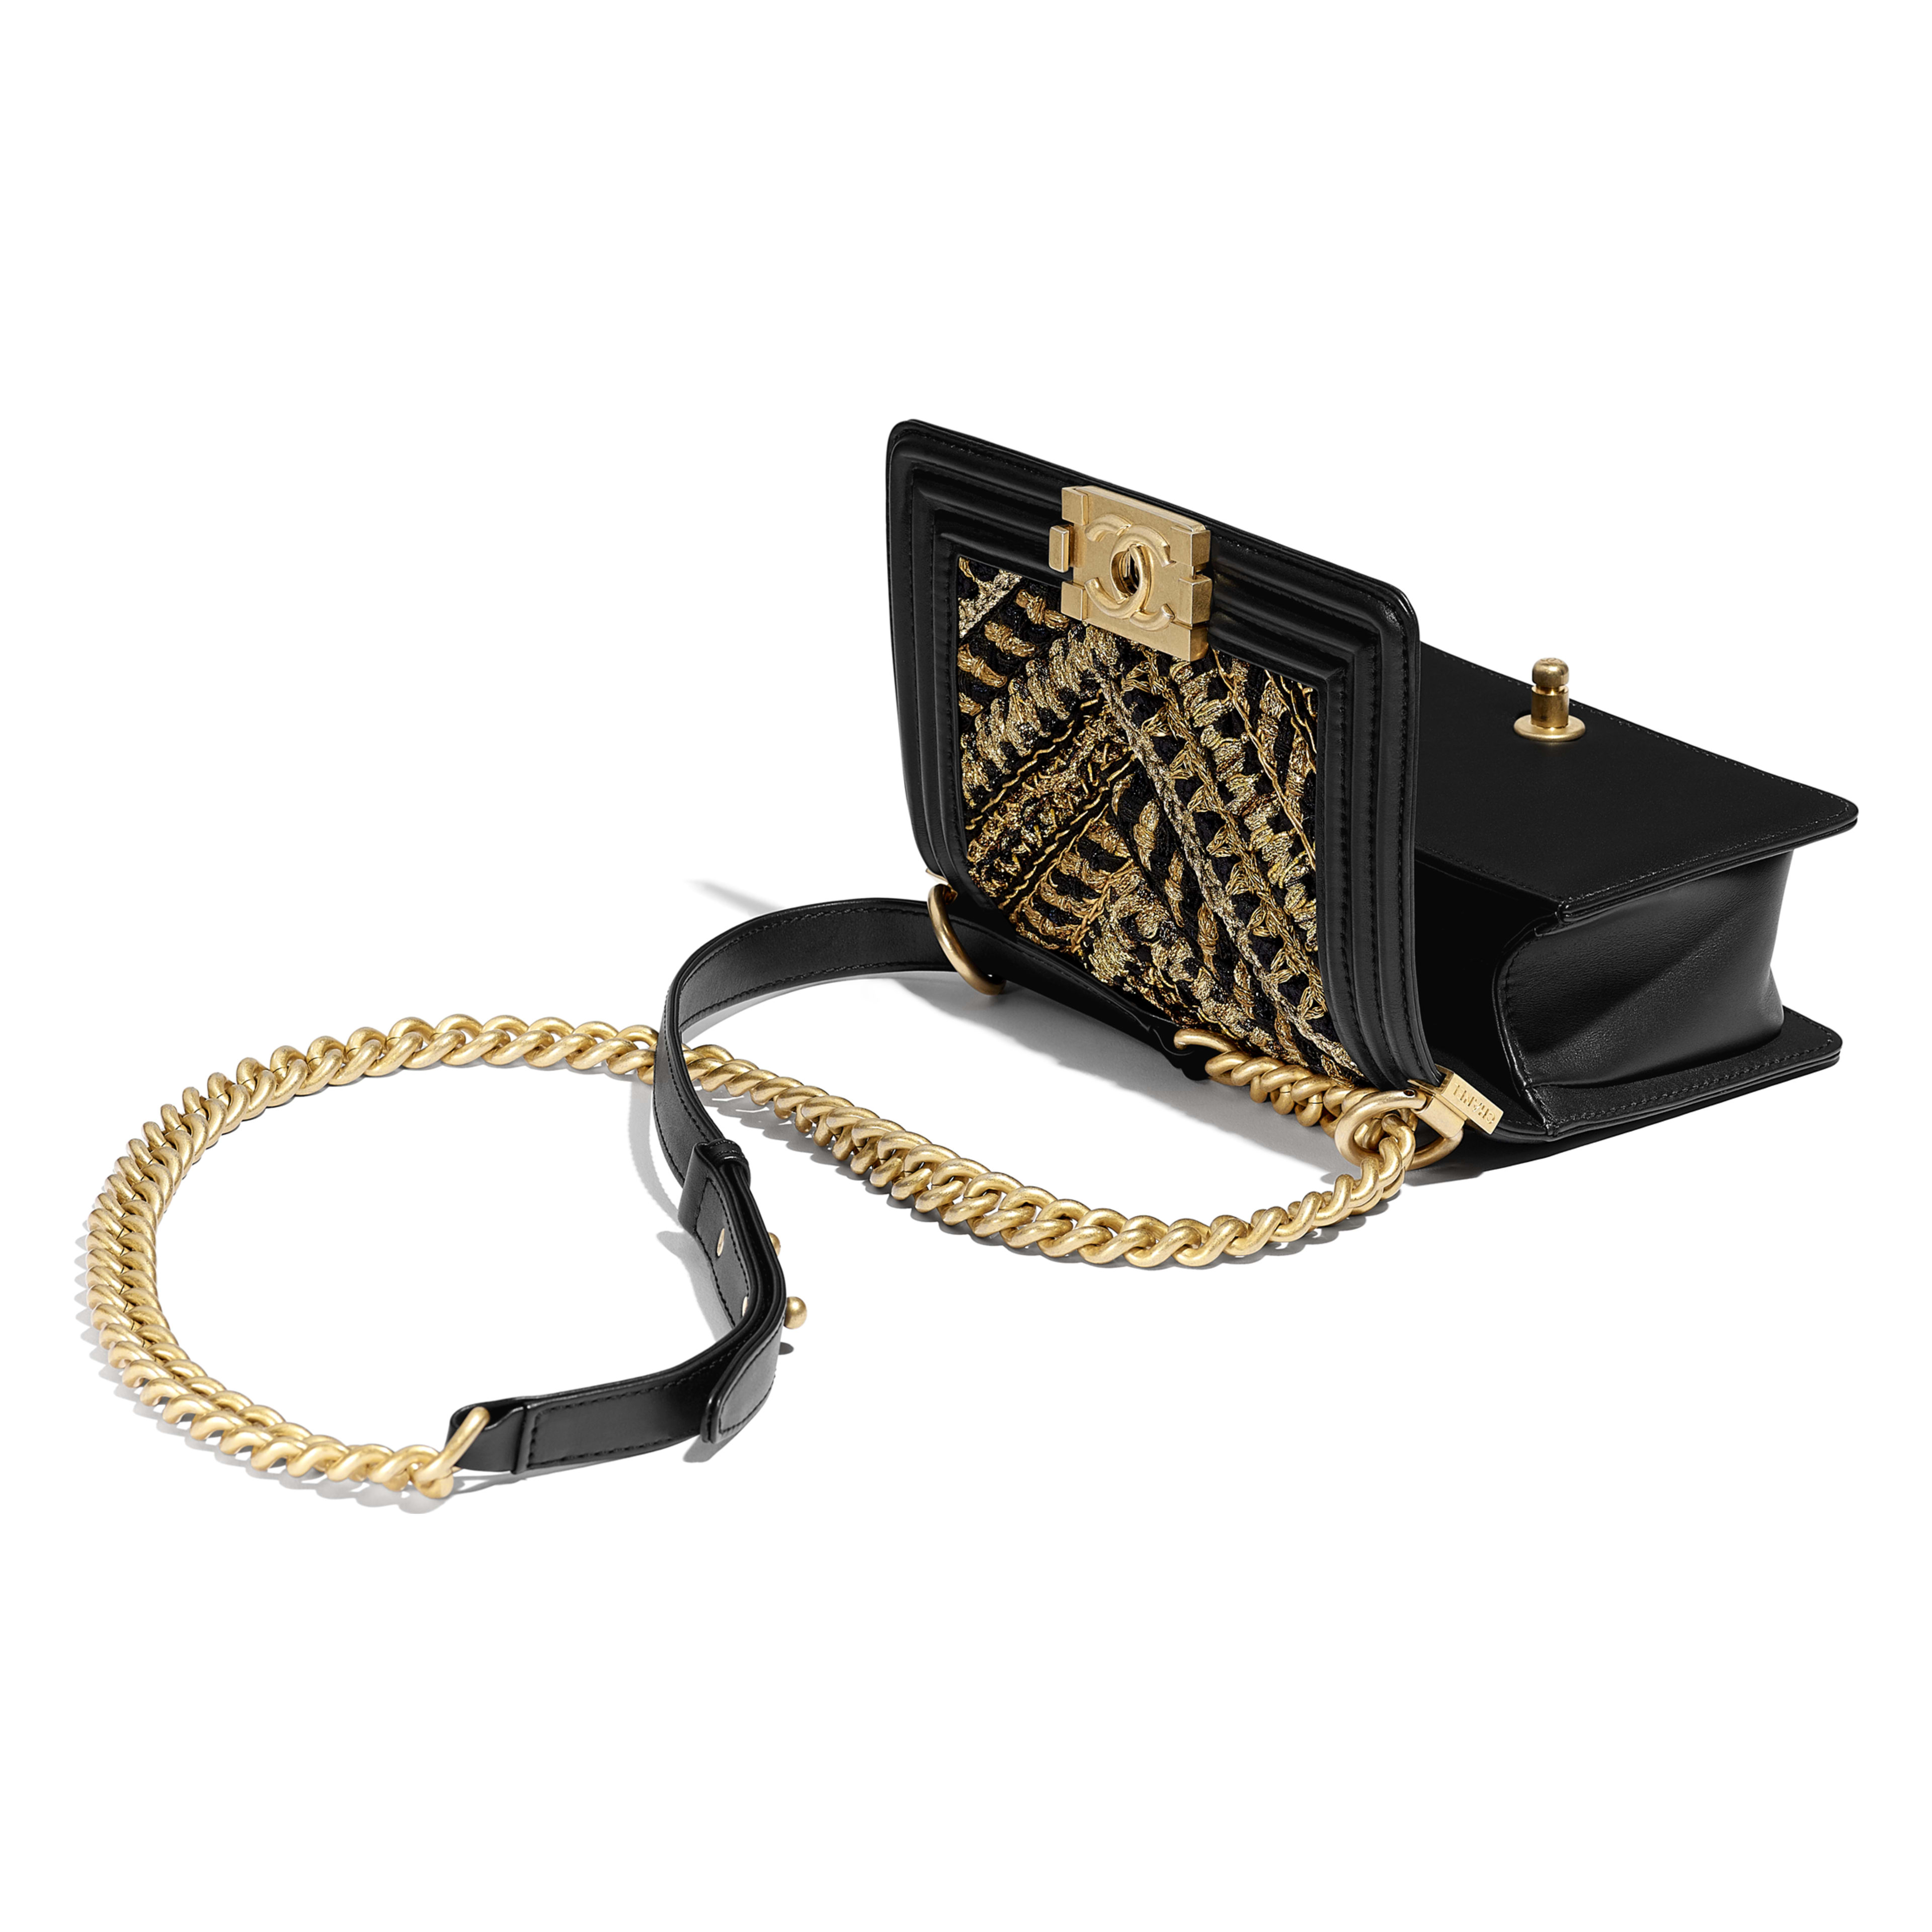 Small BOY CHANEL Handbag - Black & Gold - Calfskin, Cotton & Gold-Tone Metal - Other view - see full sized version